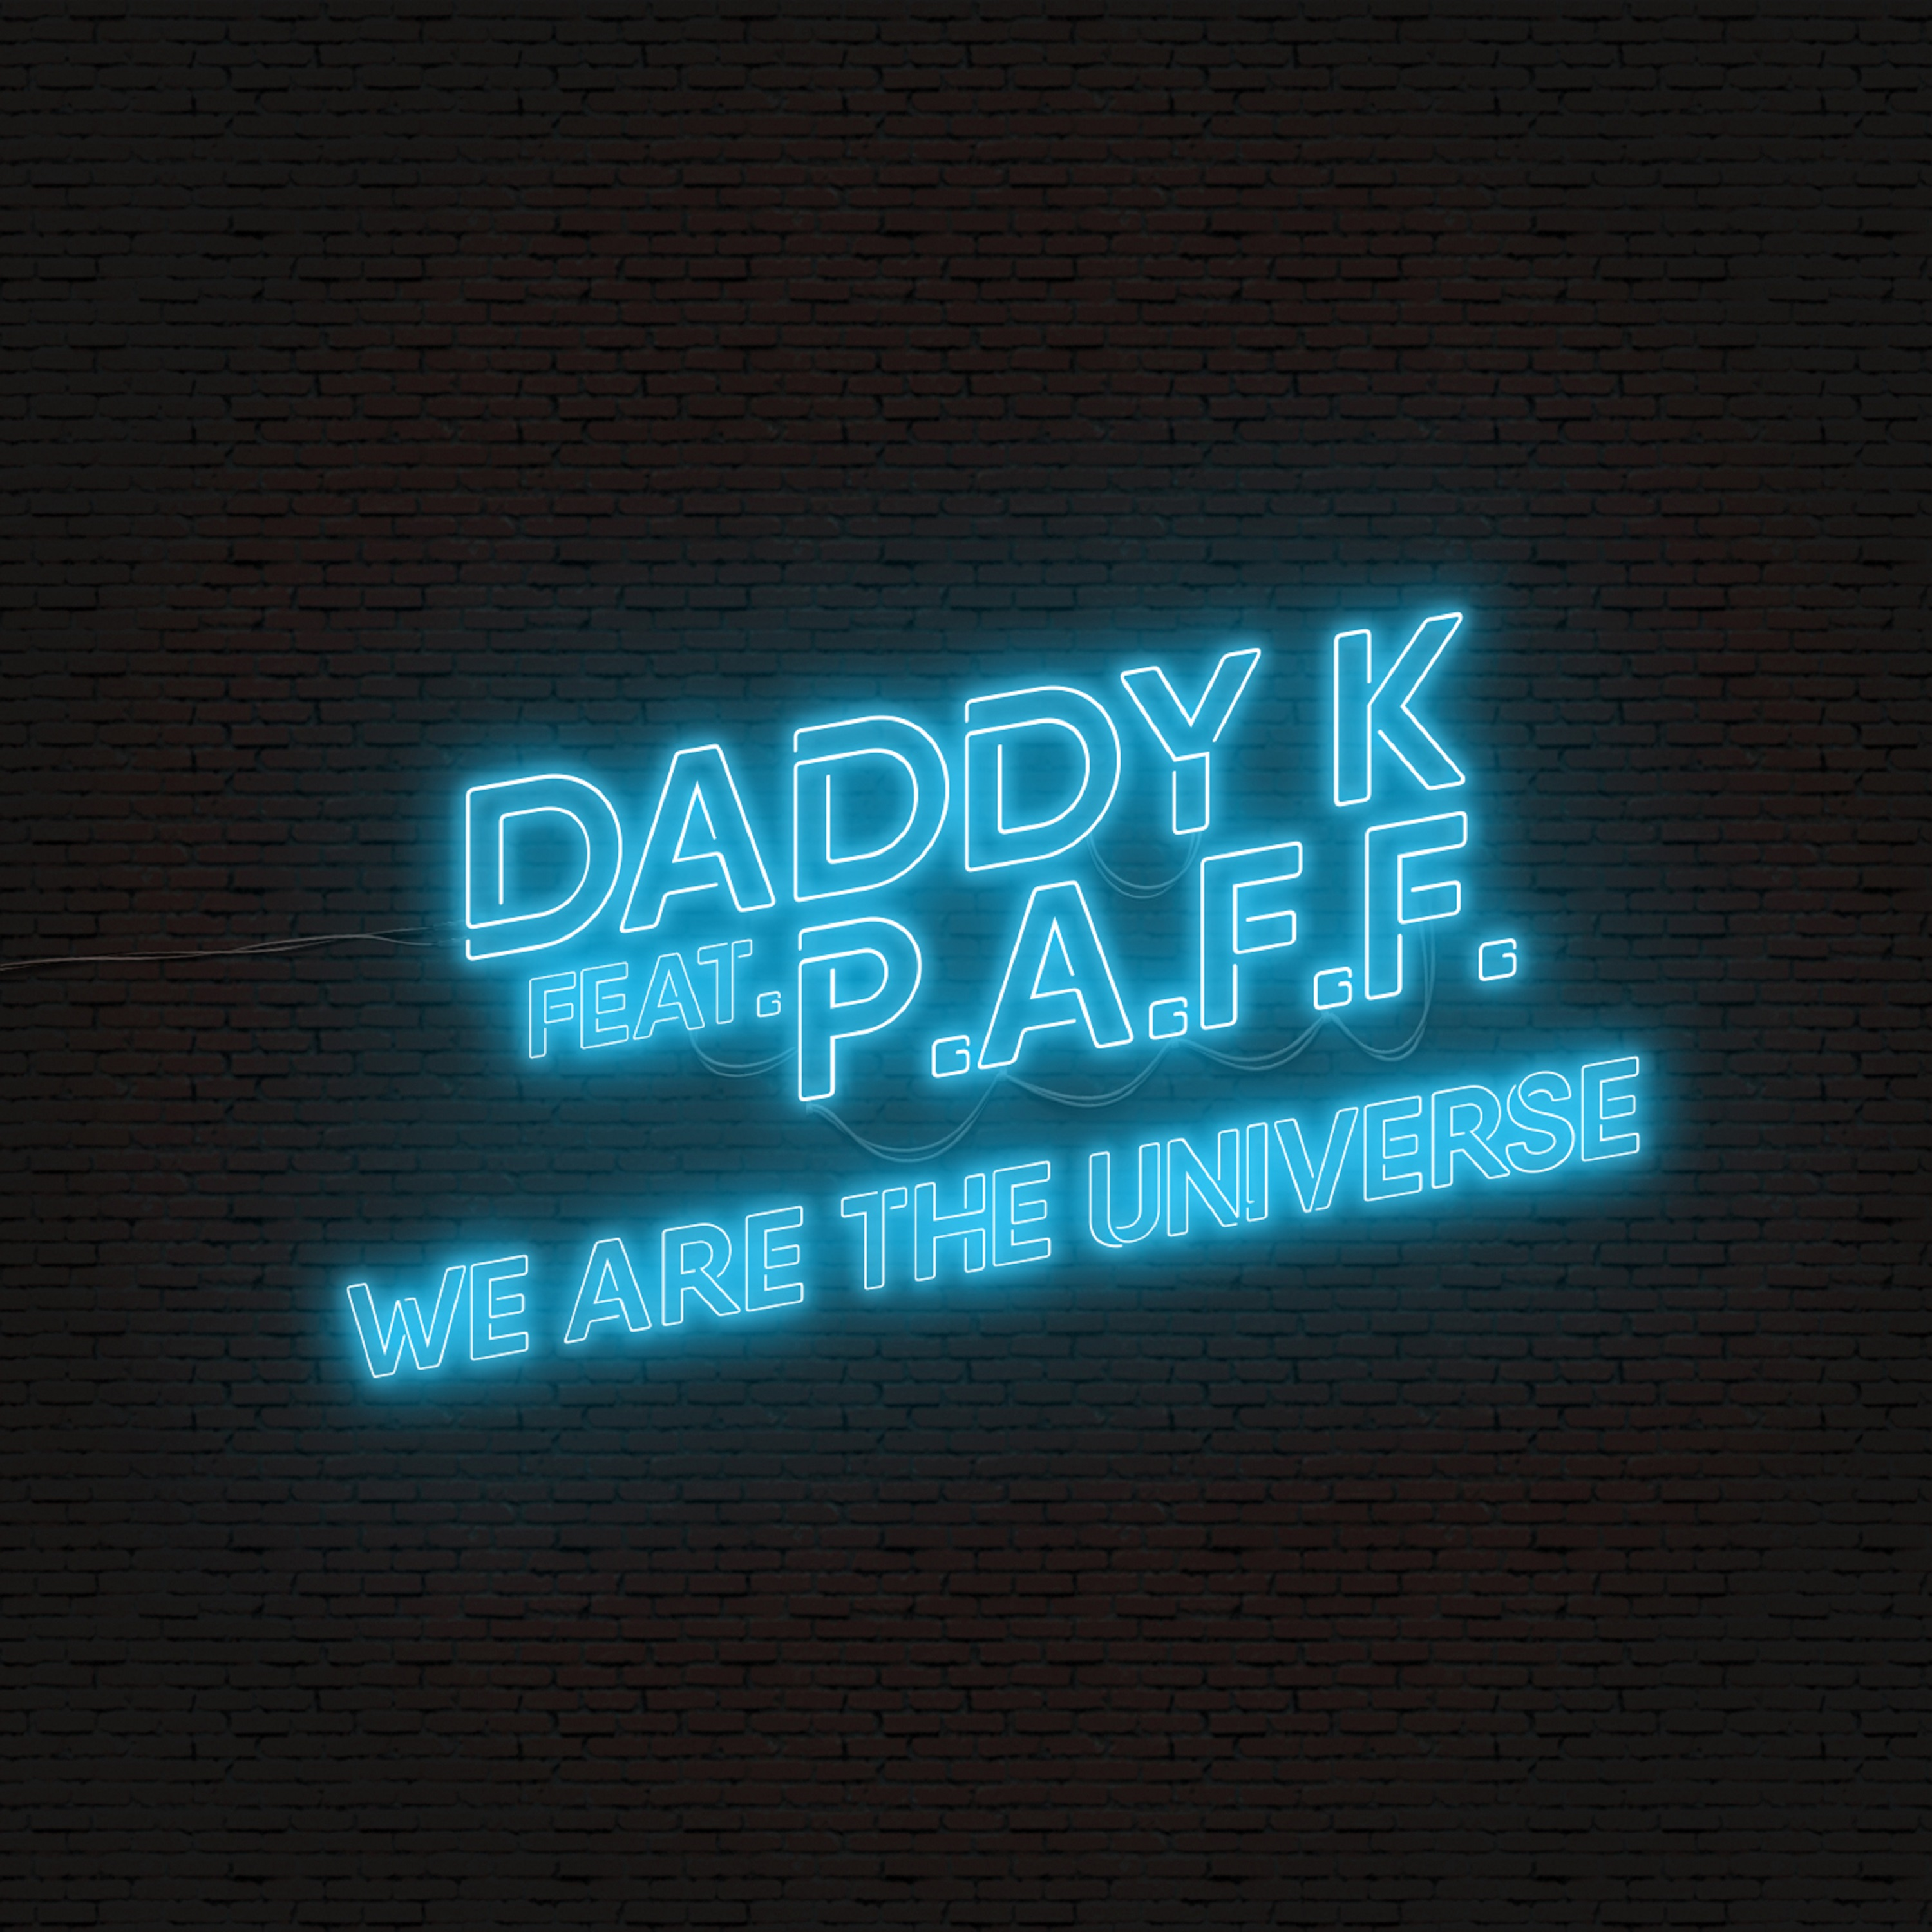 DADDY K feat. P.A.F.F